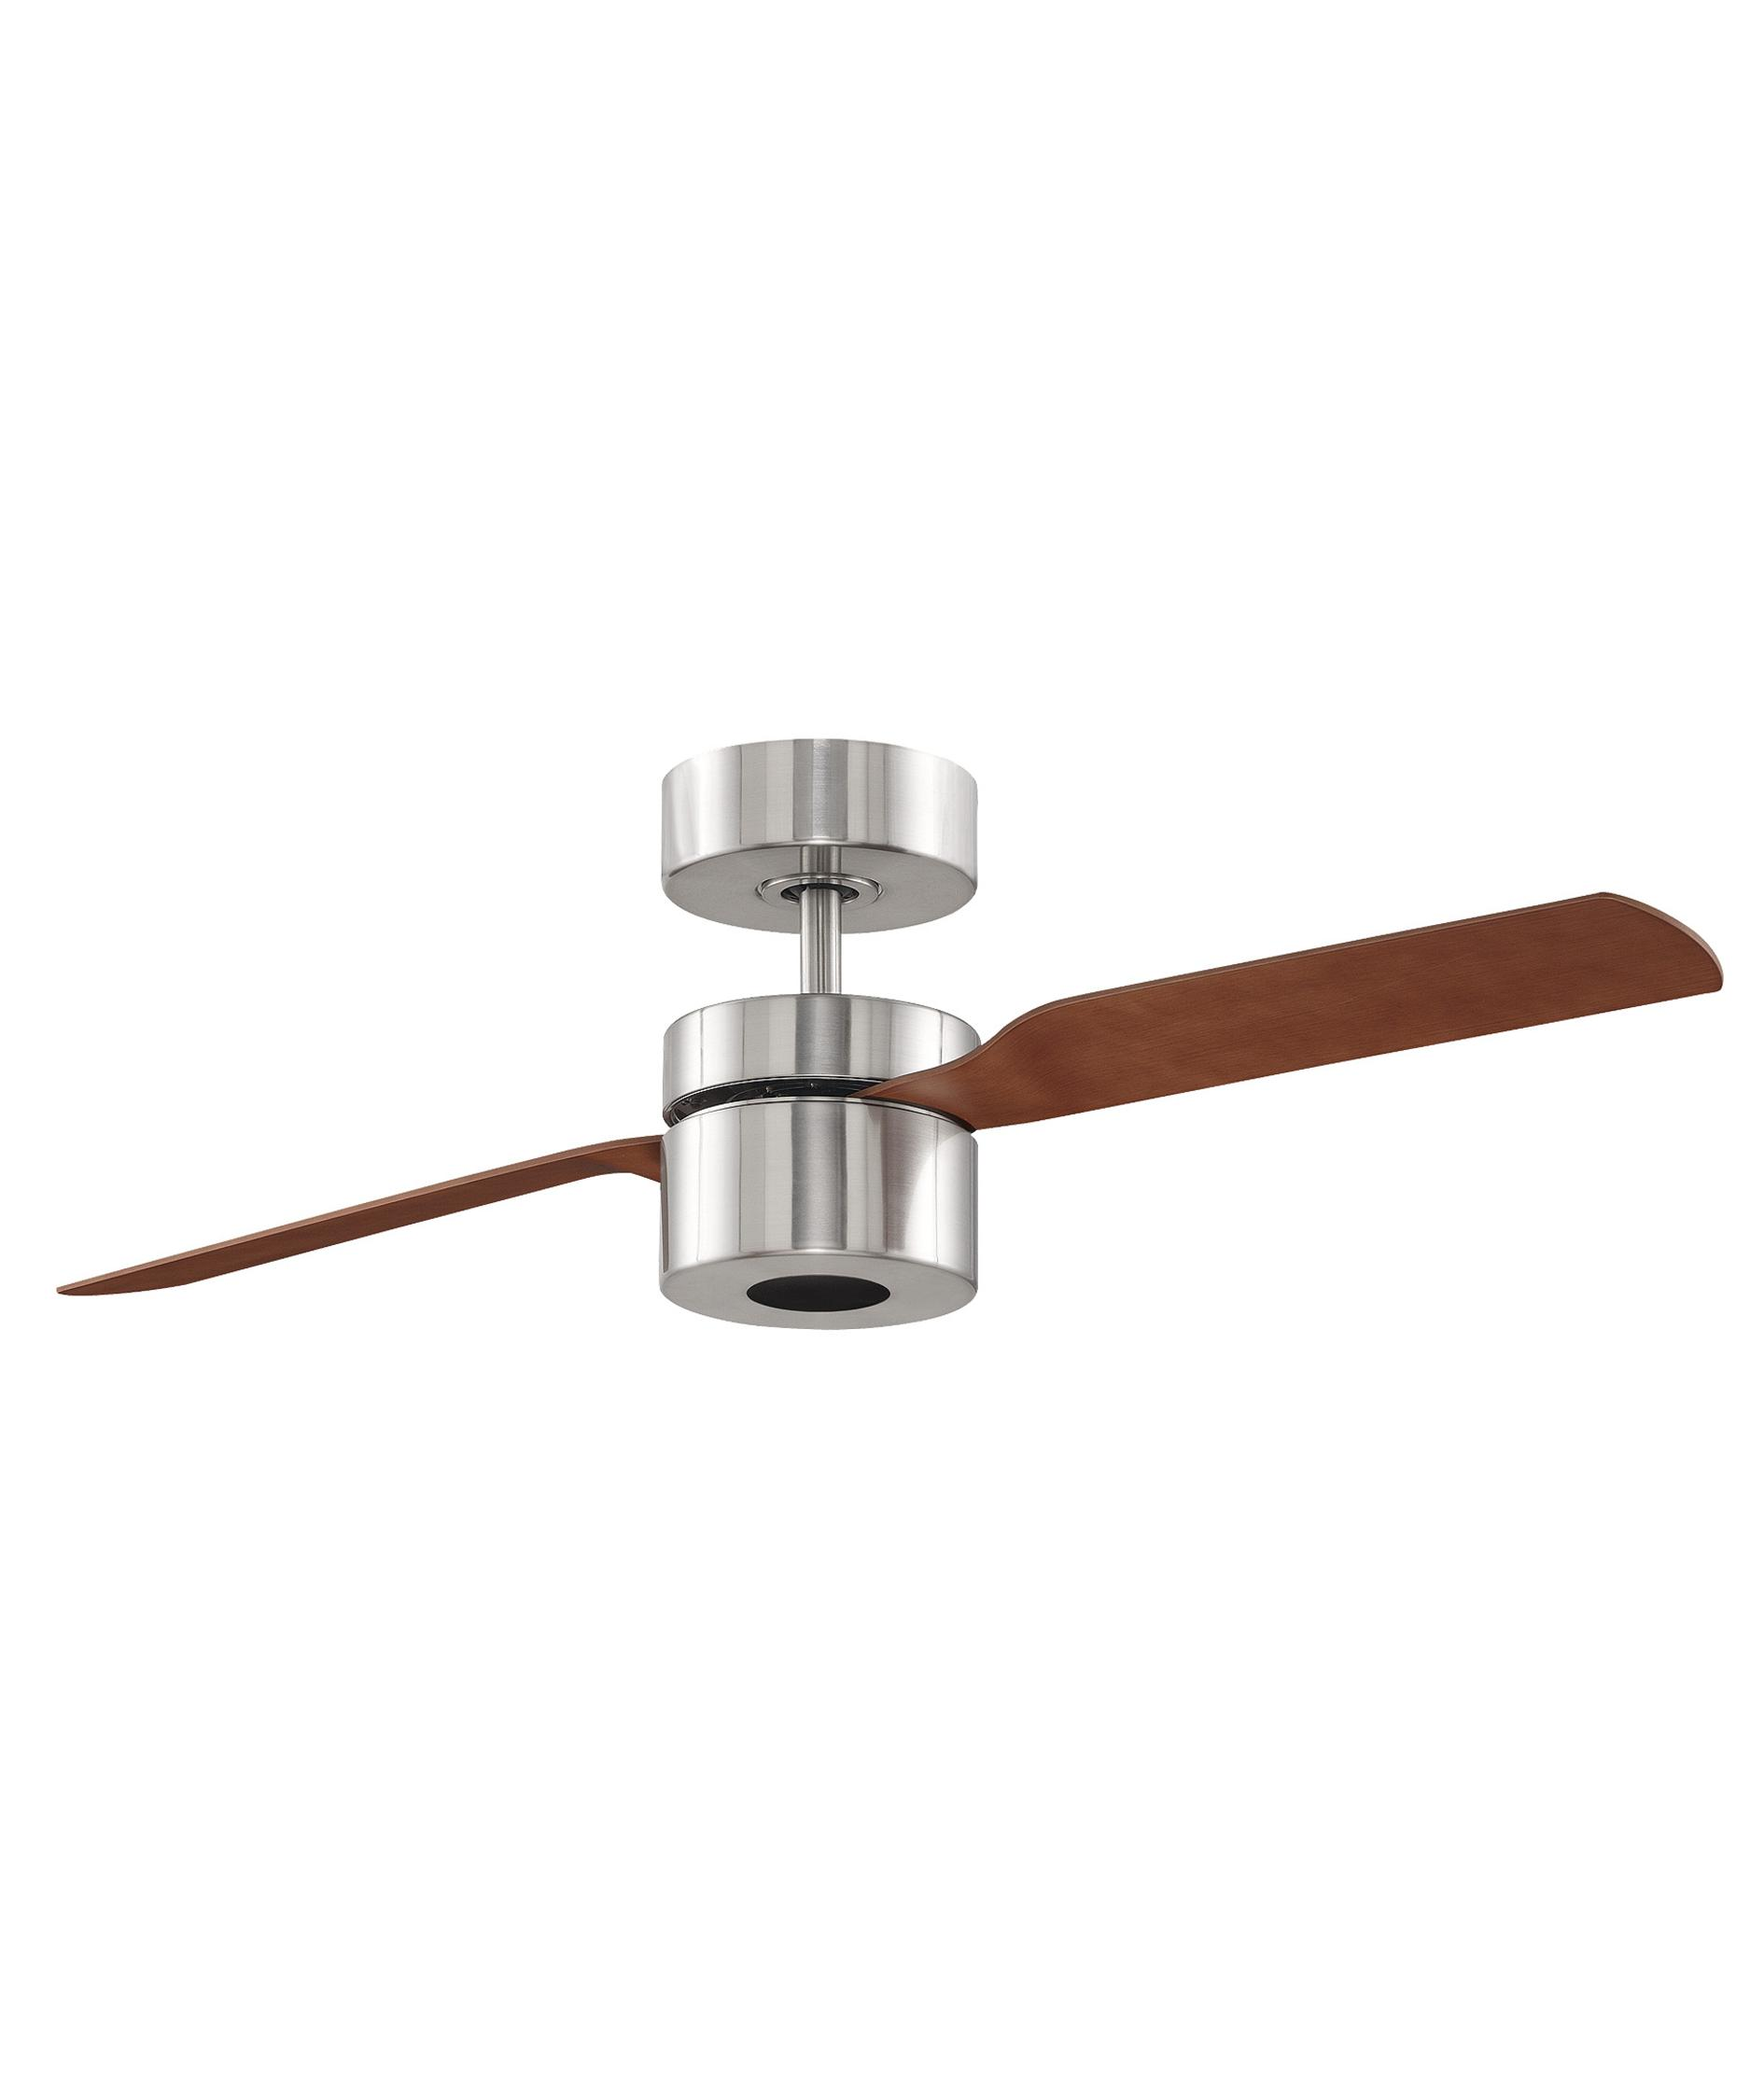 10 Benefits Of Two Blade Ceiling Fans